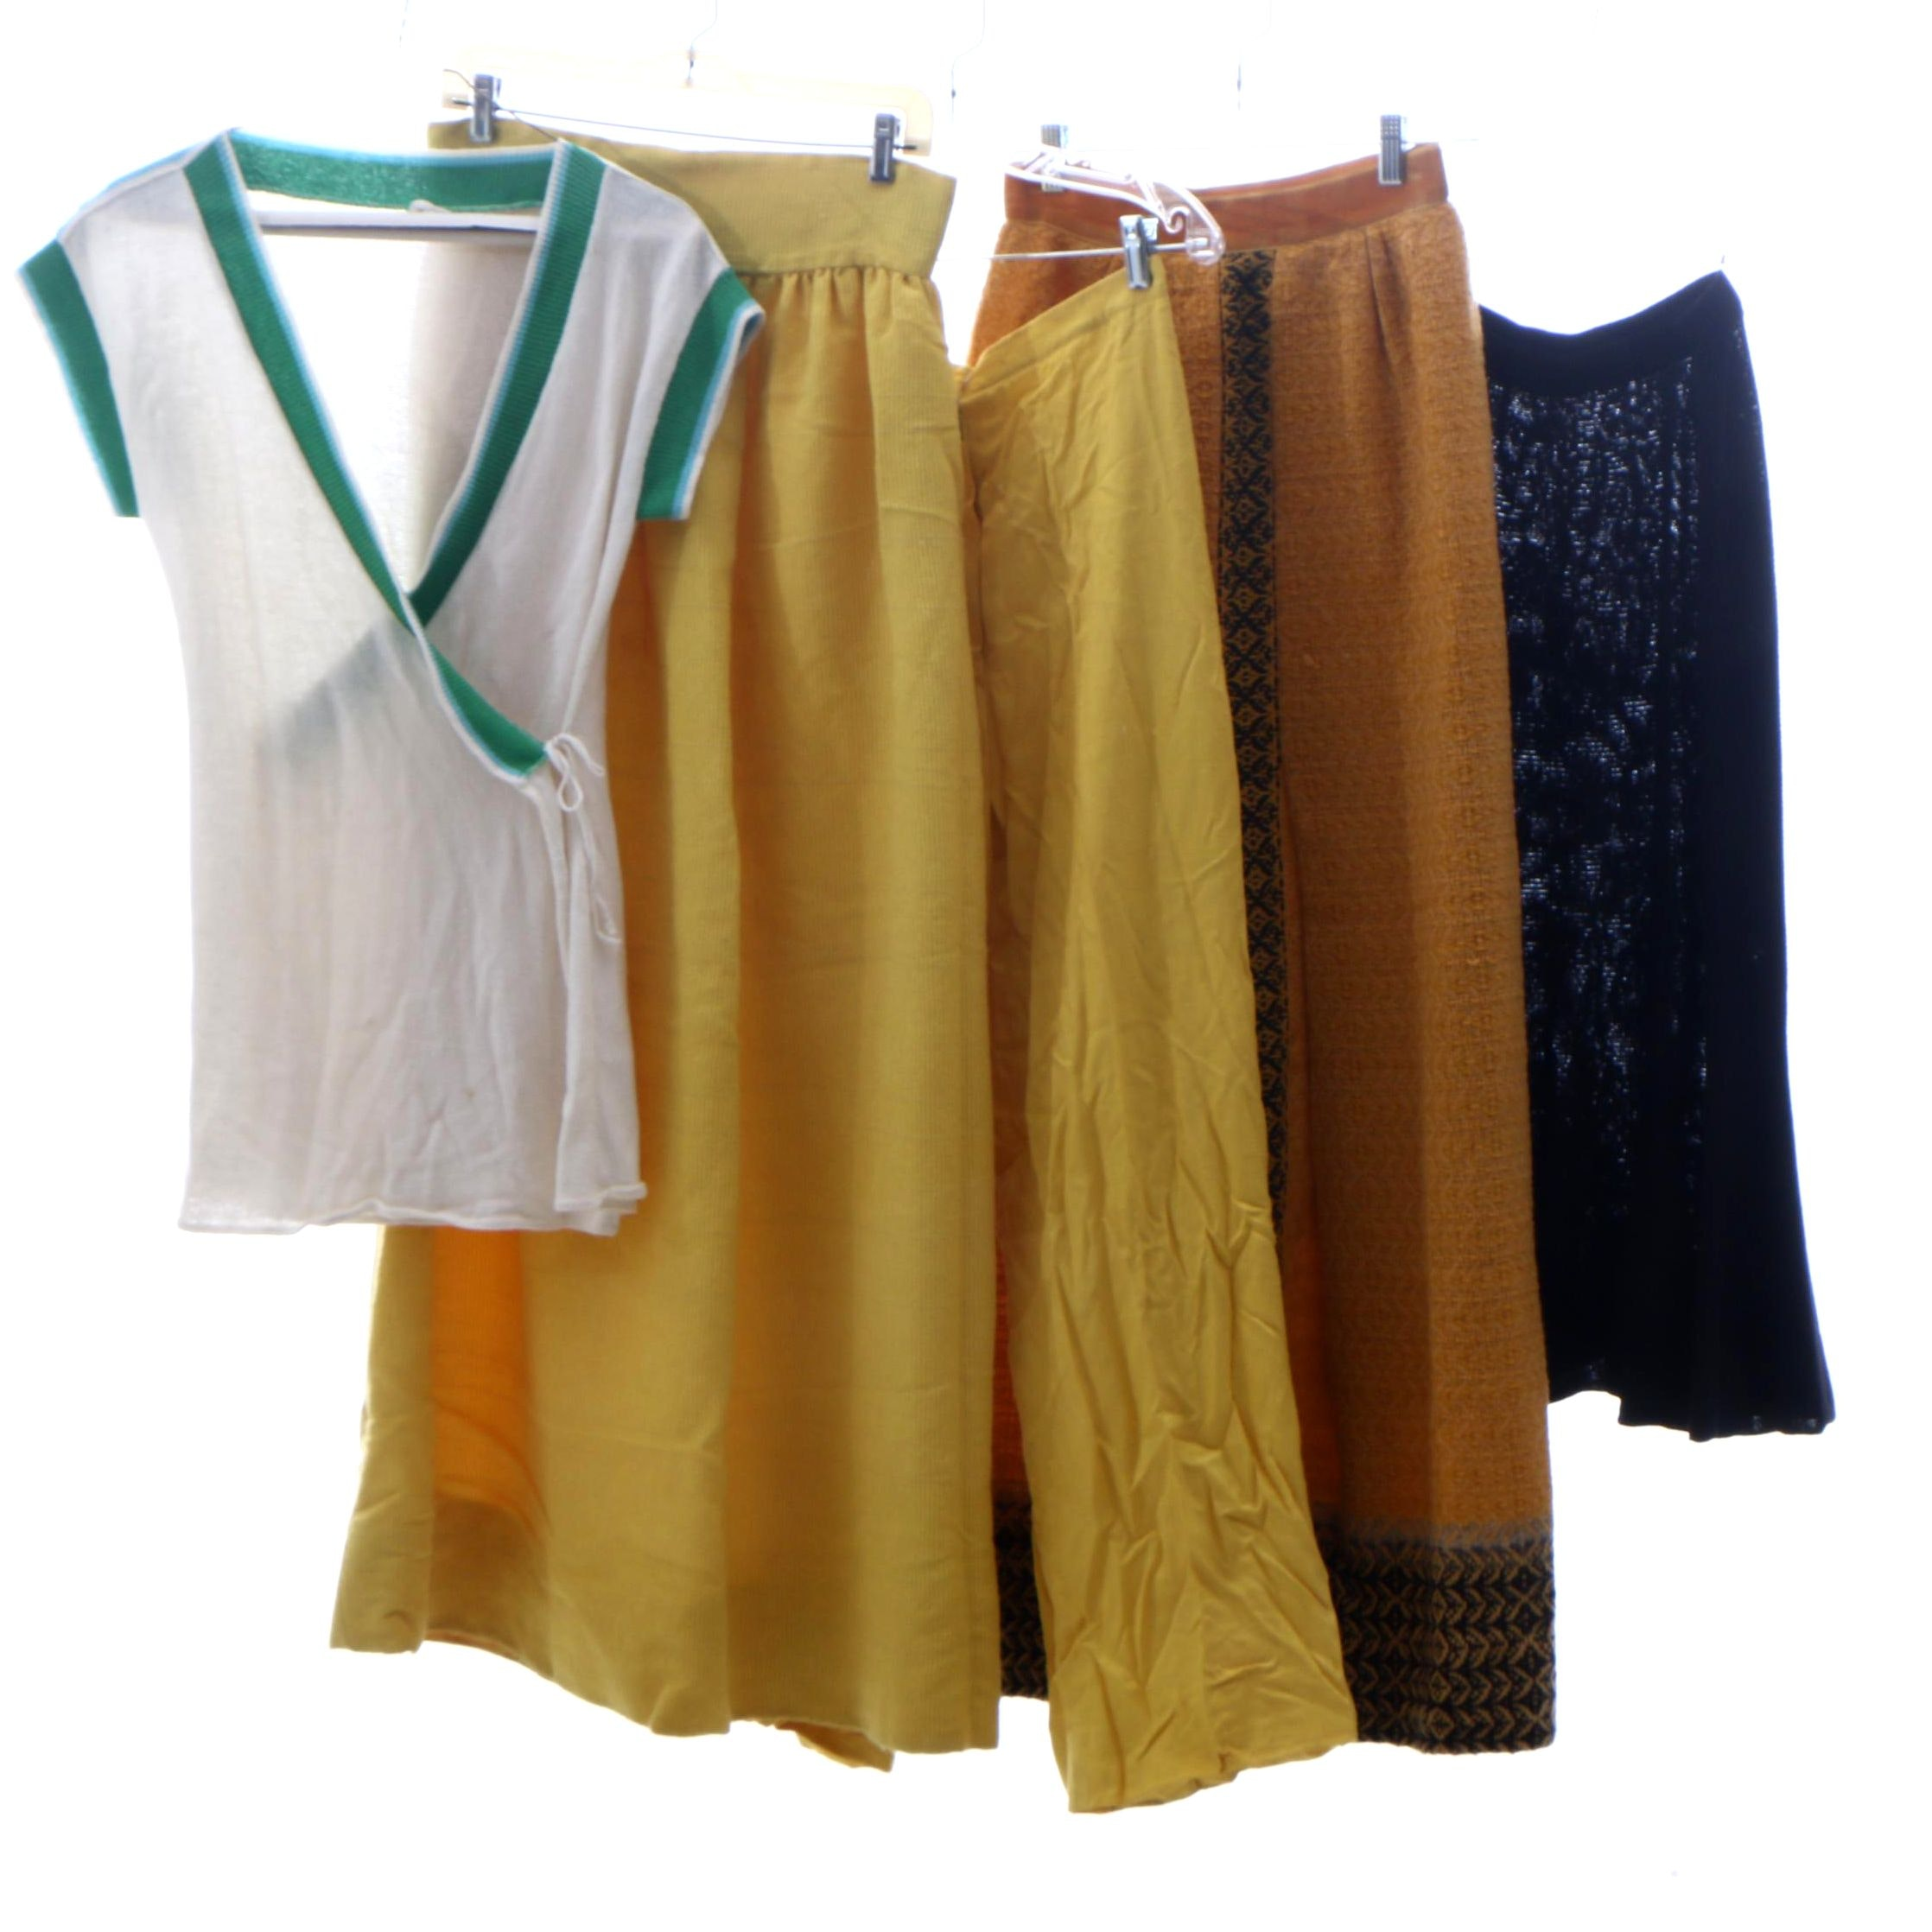 J. Tiktiner Yellow Trousers, Countess Ebba von Eckermann, and Other Separates